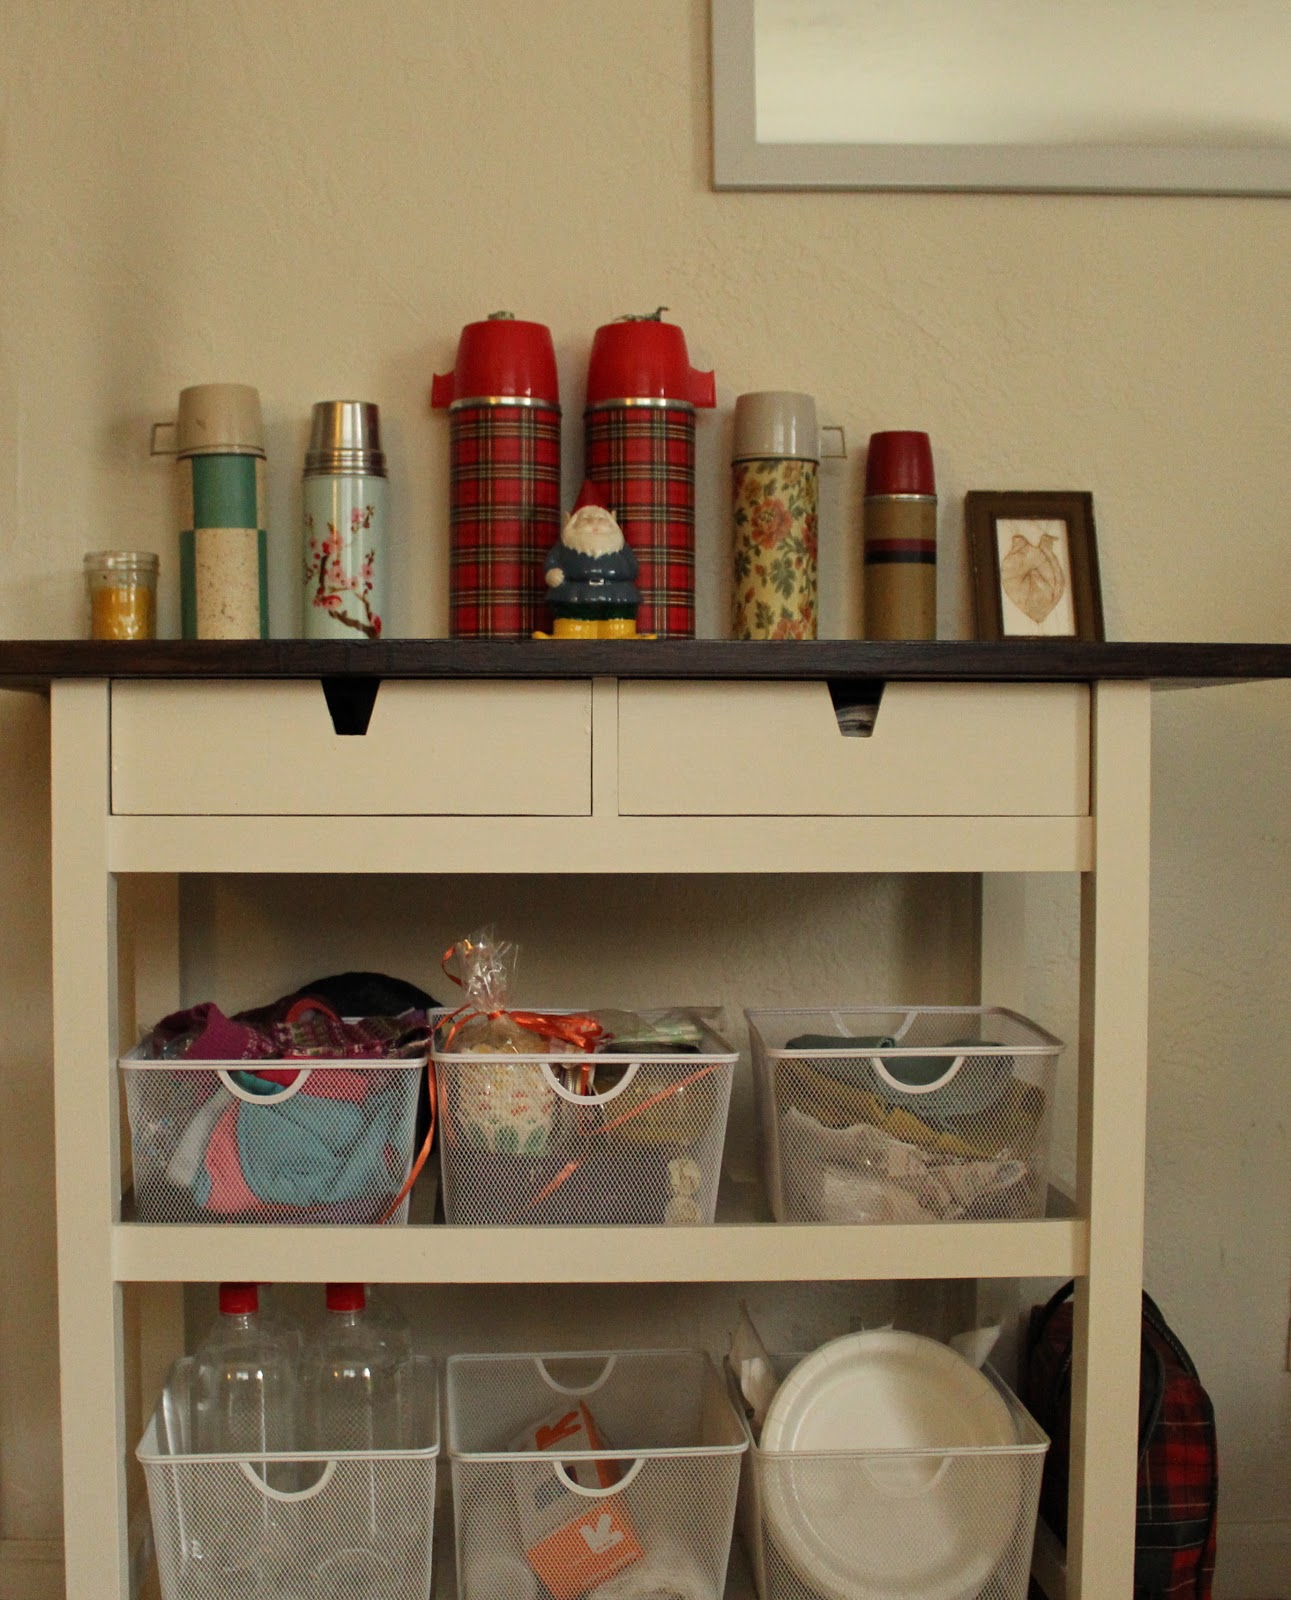 Good After: The FÖRHÖJA Kitchen Cart With My Personal Touch